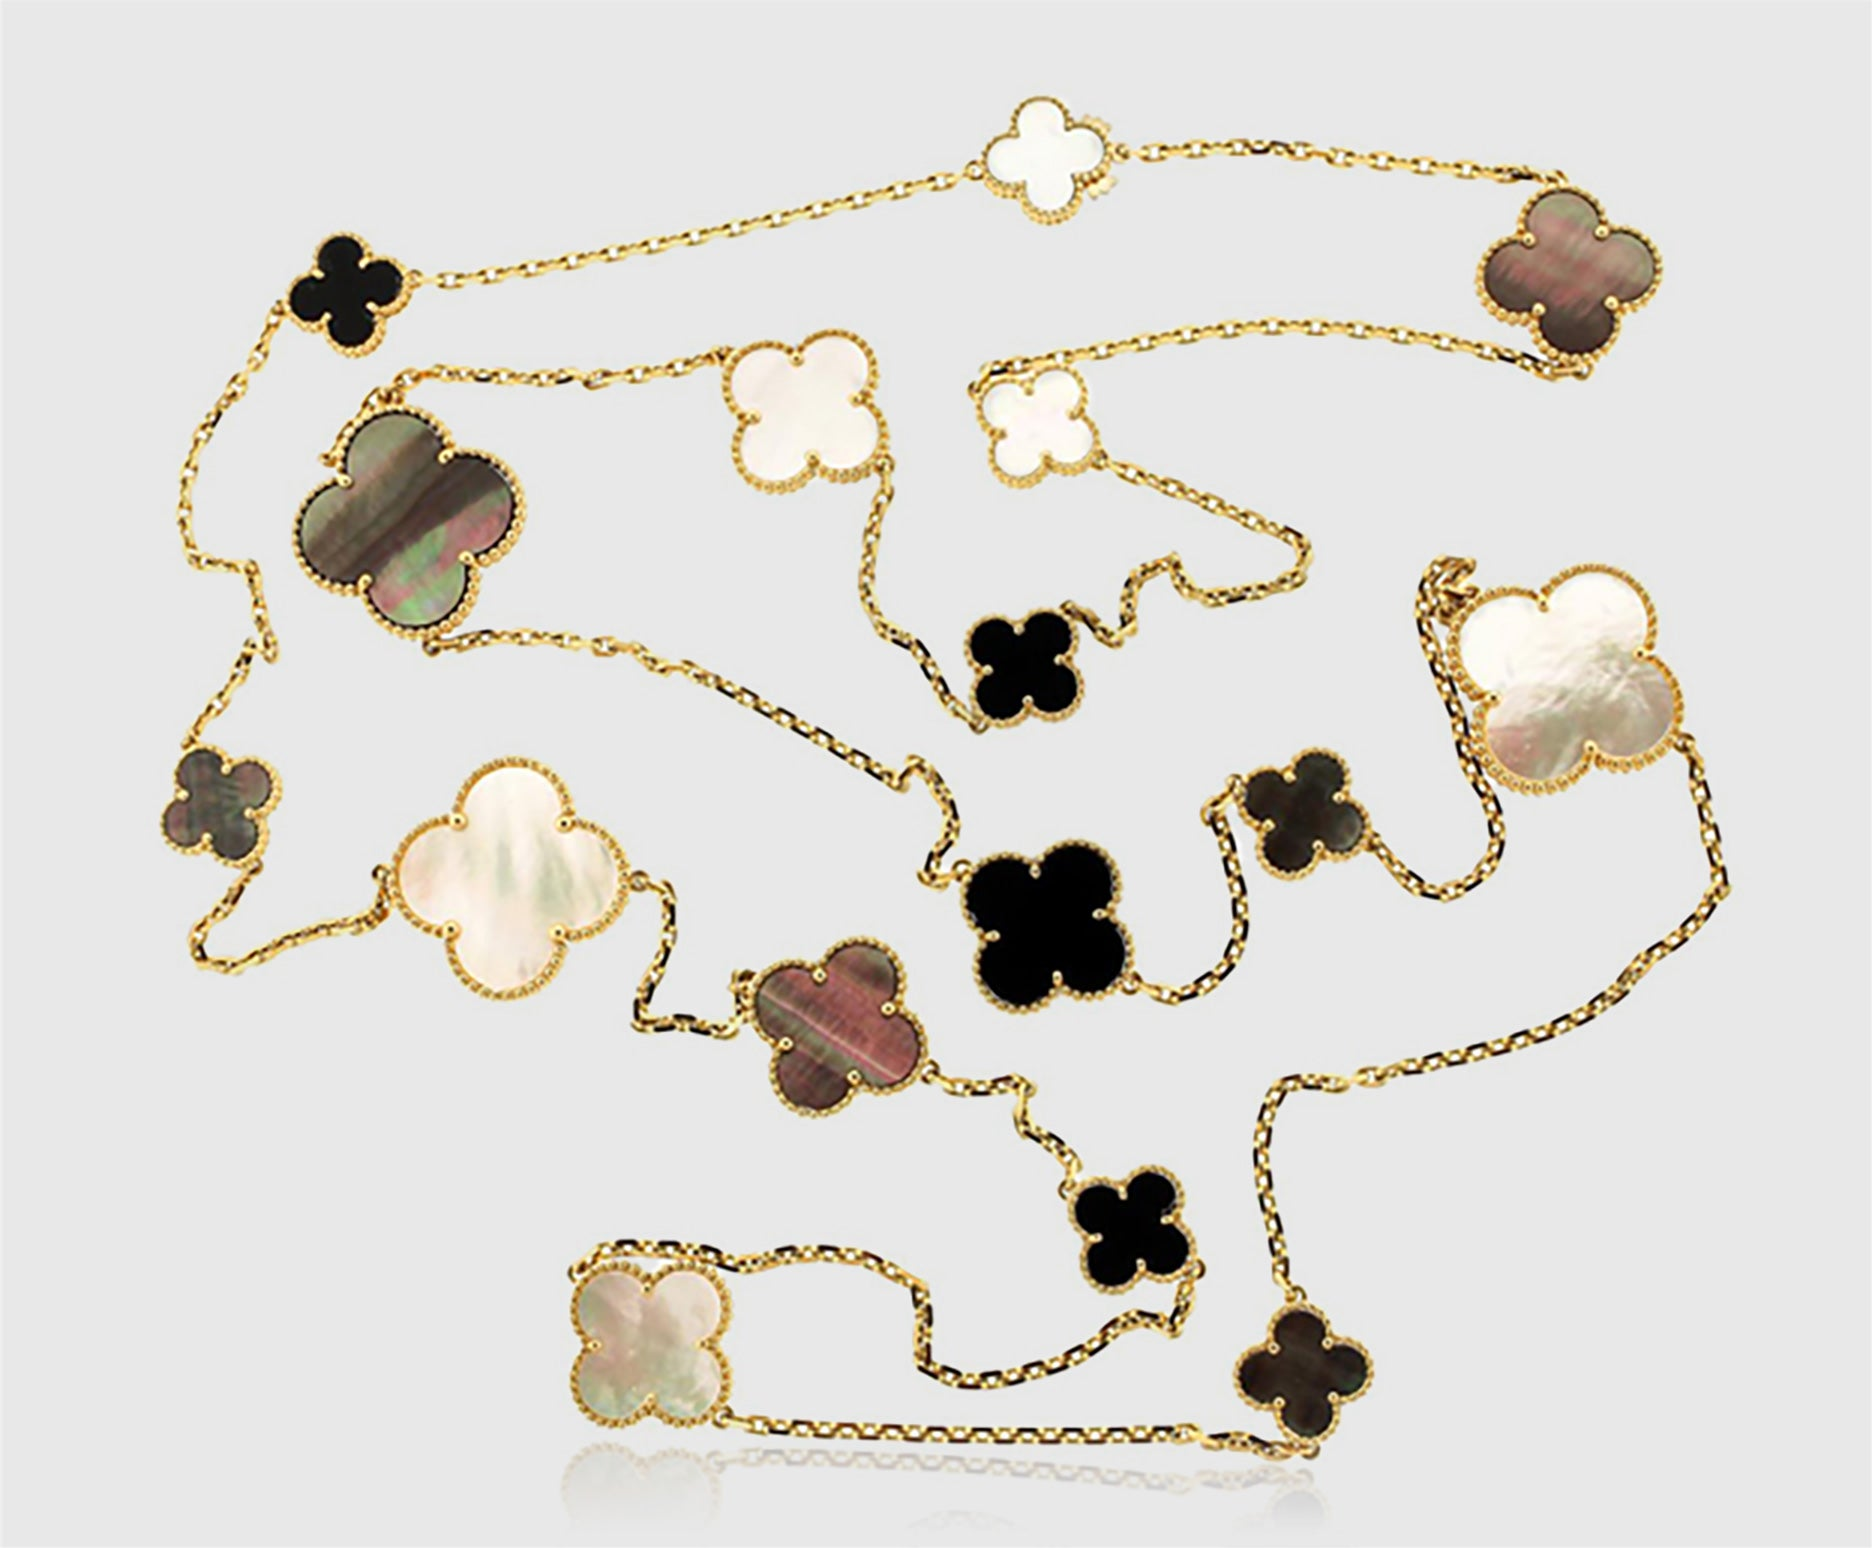 Magic Alhambra Necklace